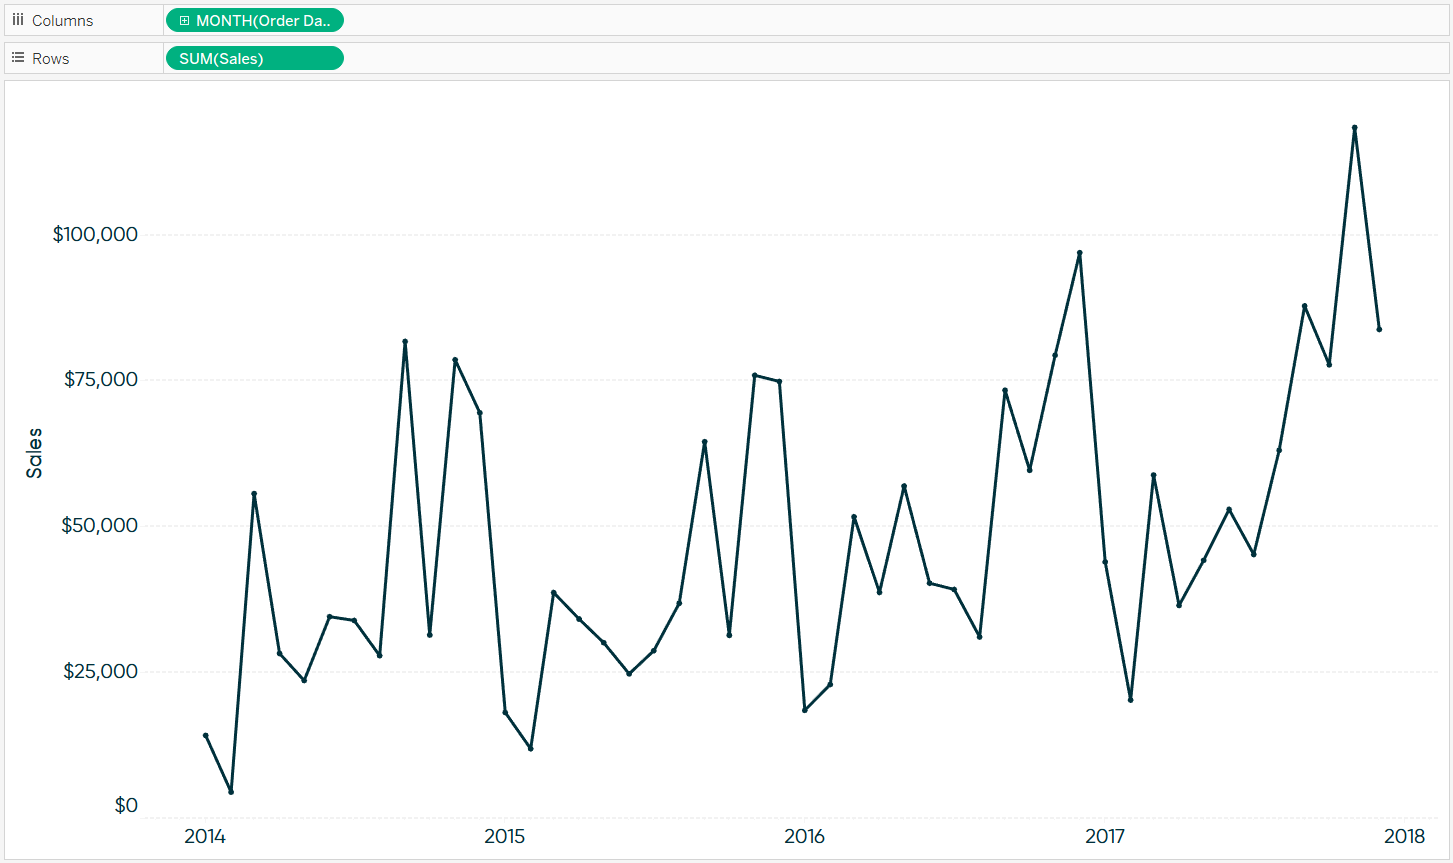 Tableau Sales by Continuous Month Line Graph